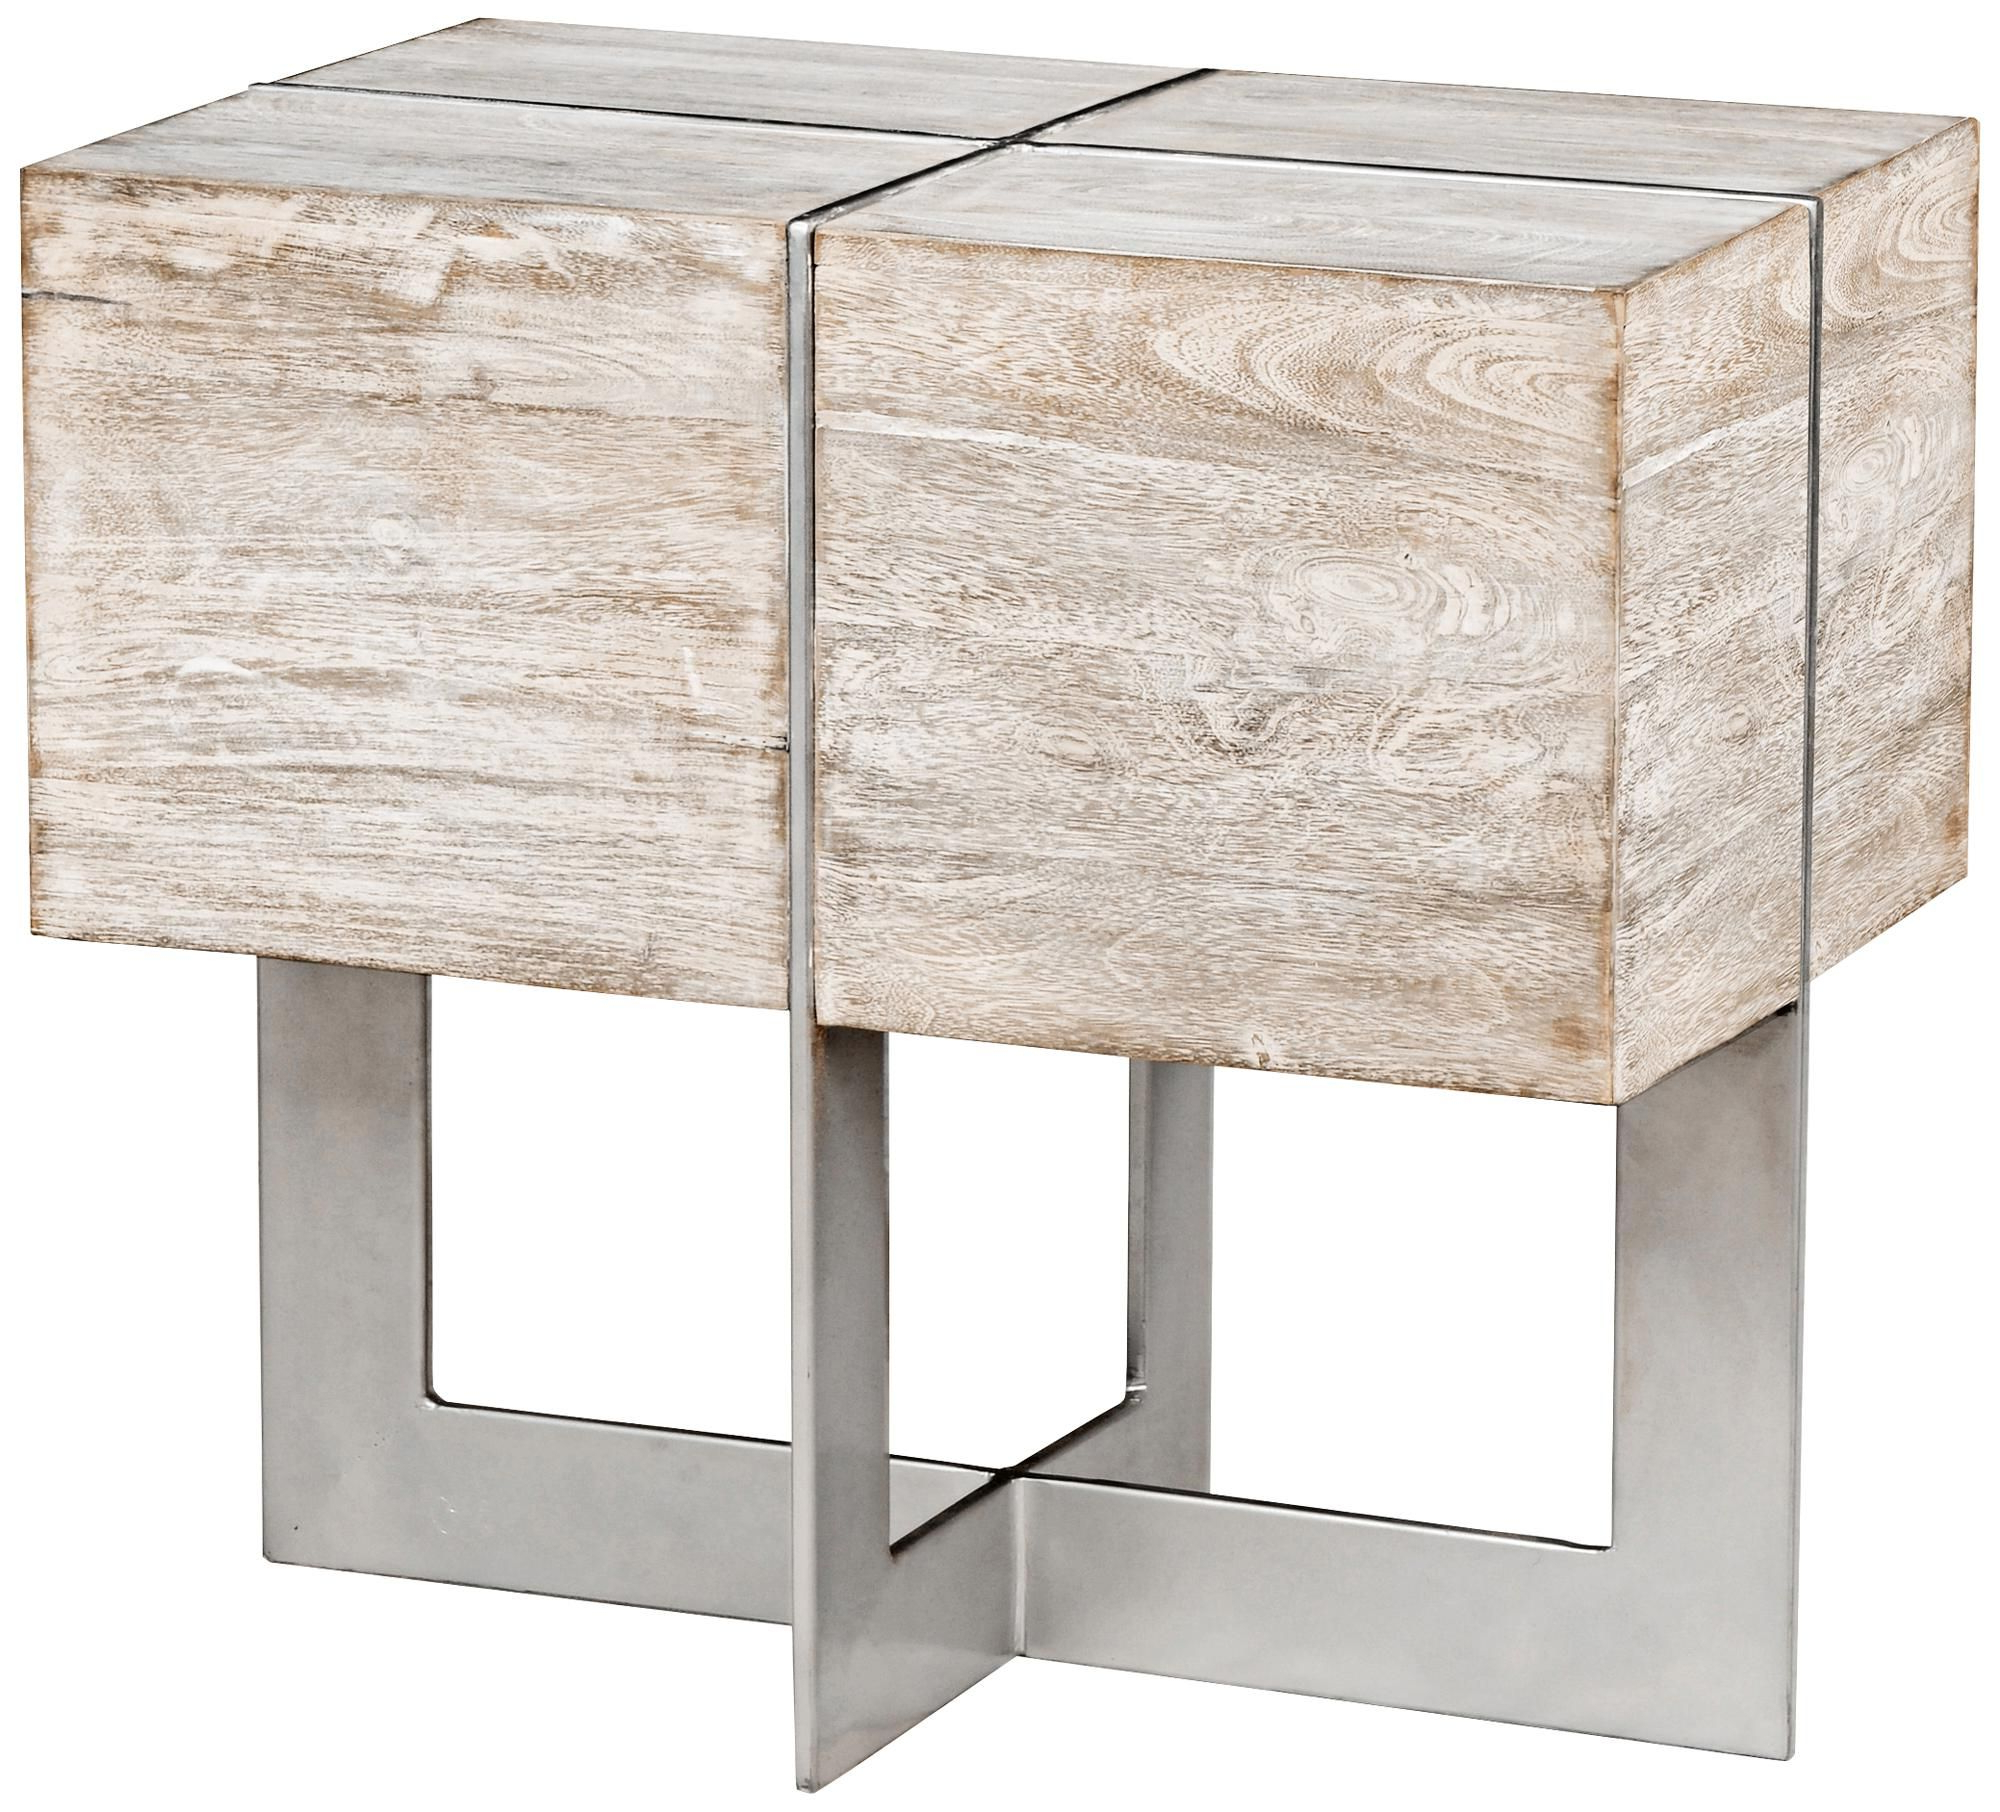 Desmond White Wash Solid Mango Wood Block End Table | Home Accents Within Parsons Walnut Top & Dark Steel Base 48X16 Console Tables (View 5 of 20)